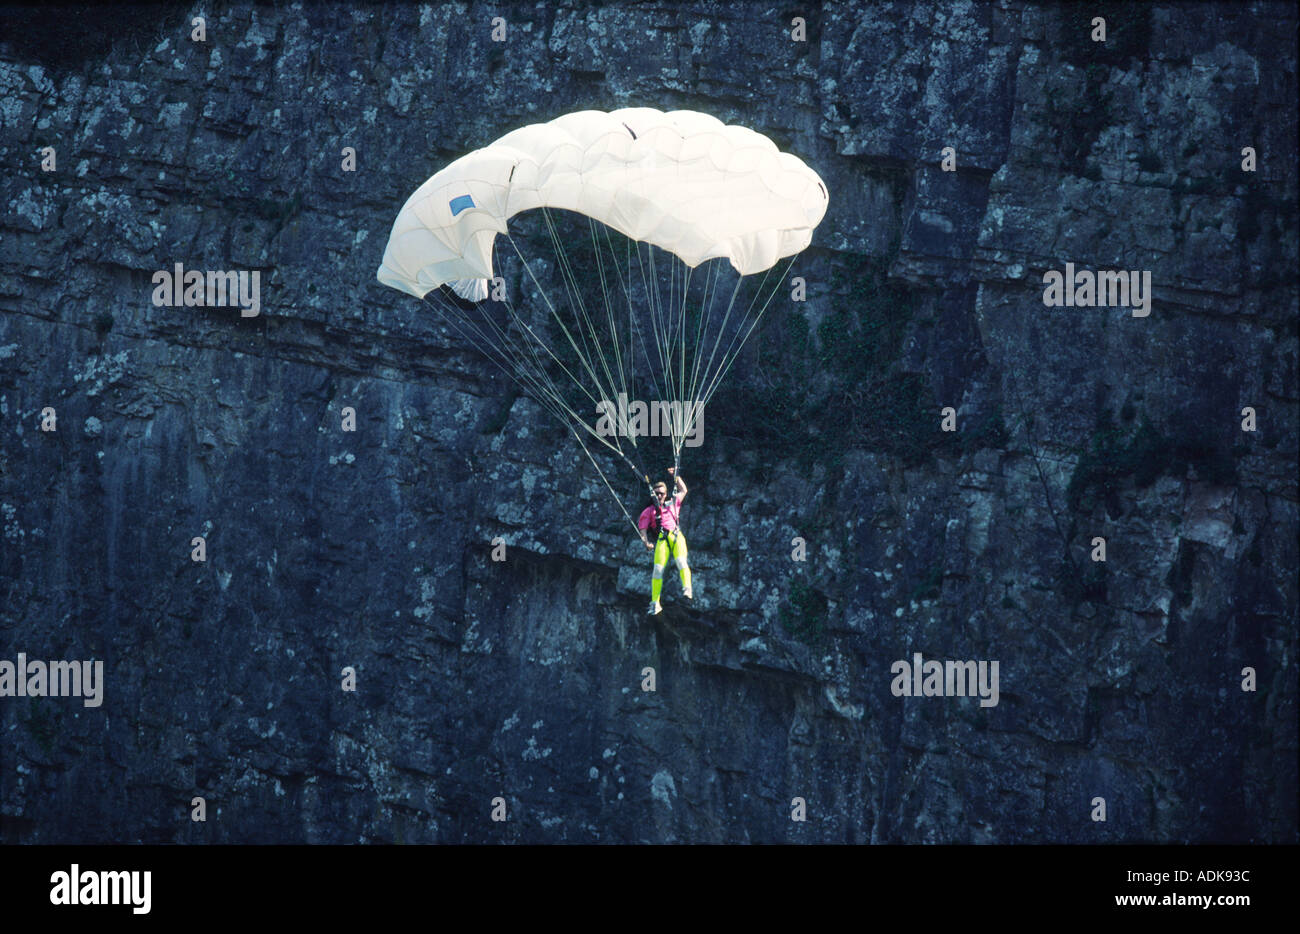 PICTURE CREDIT DOUG BLANE Russell Powell BASE 230 BASE Jumping Cheddar Gorge - Stock Image